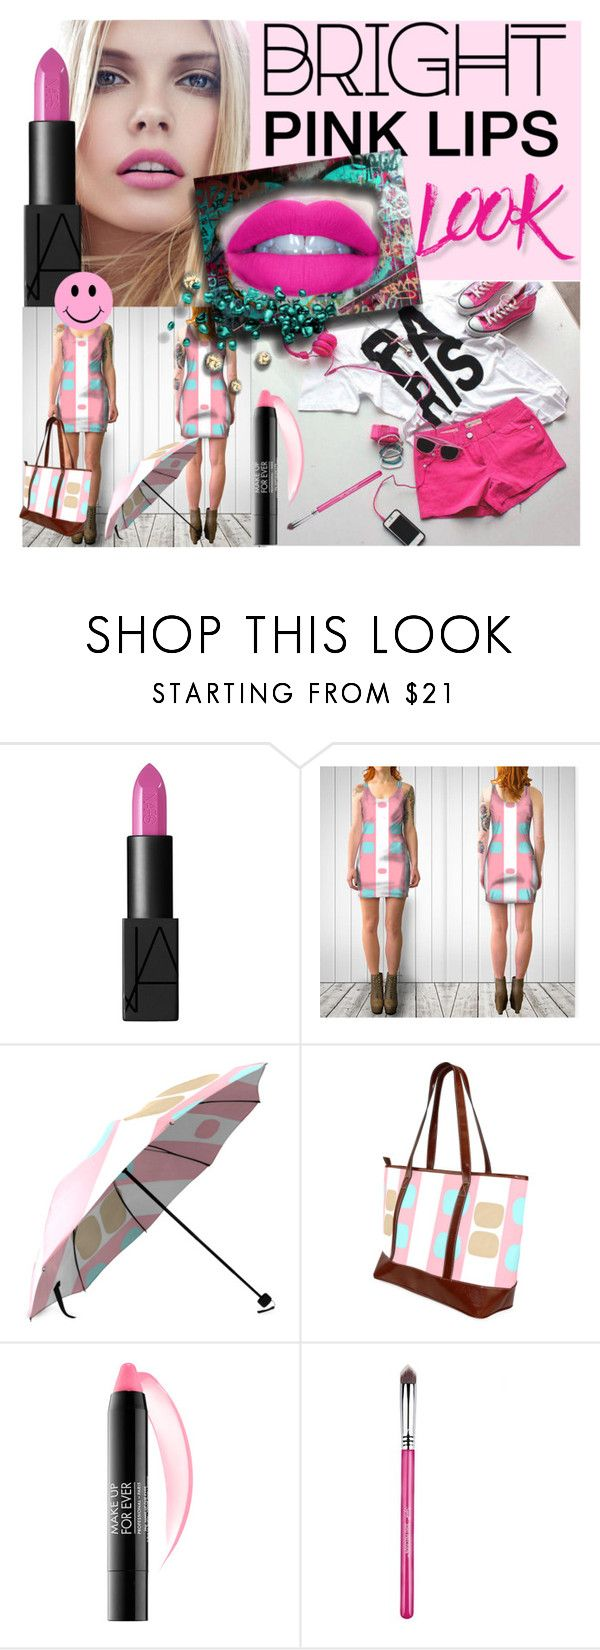 """BRIGHT PINK LIPS LOOK"" by annabelle-h-ringen-nymo ❤ liked on Polyvore featuring beauty, NARS Cosmetics, GURU, MAKE UP FOR EVER and pinklips"